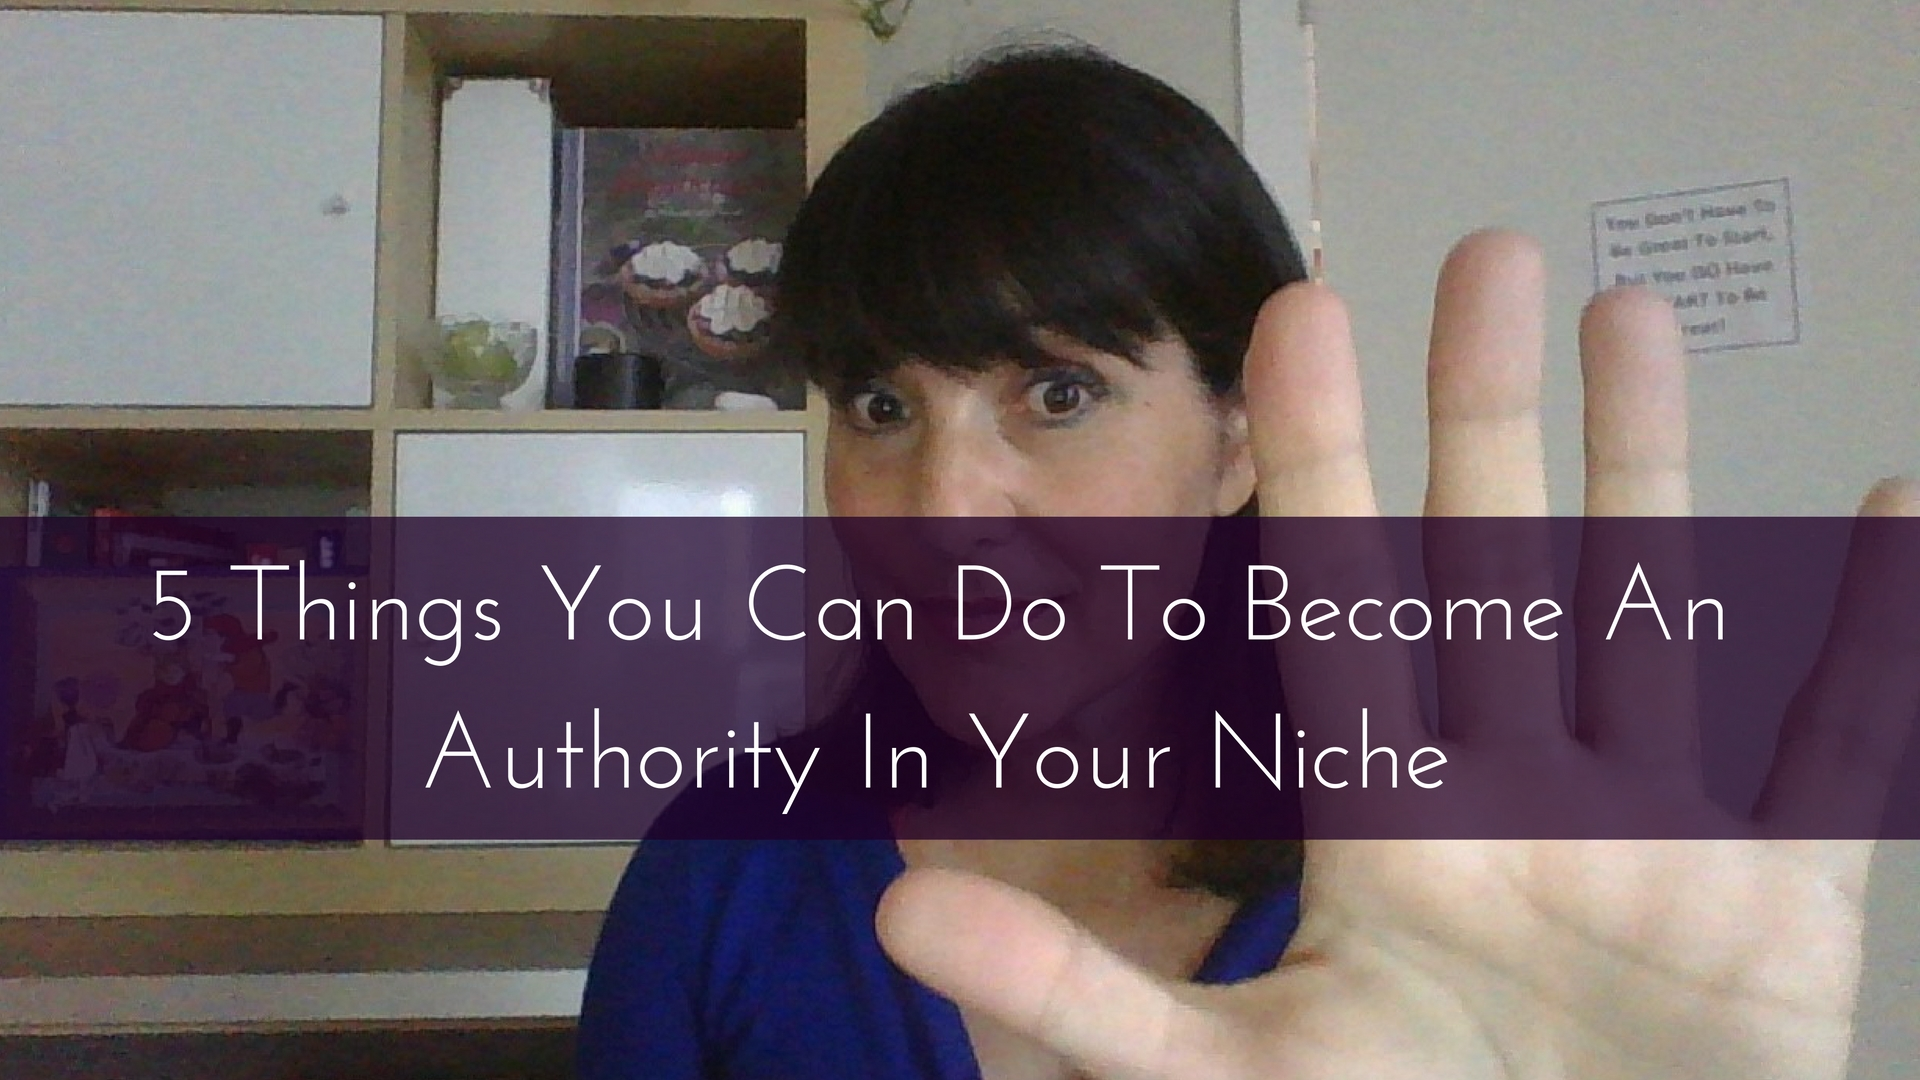 5 Things You Can Do To Become An Authority In Your Niche